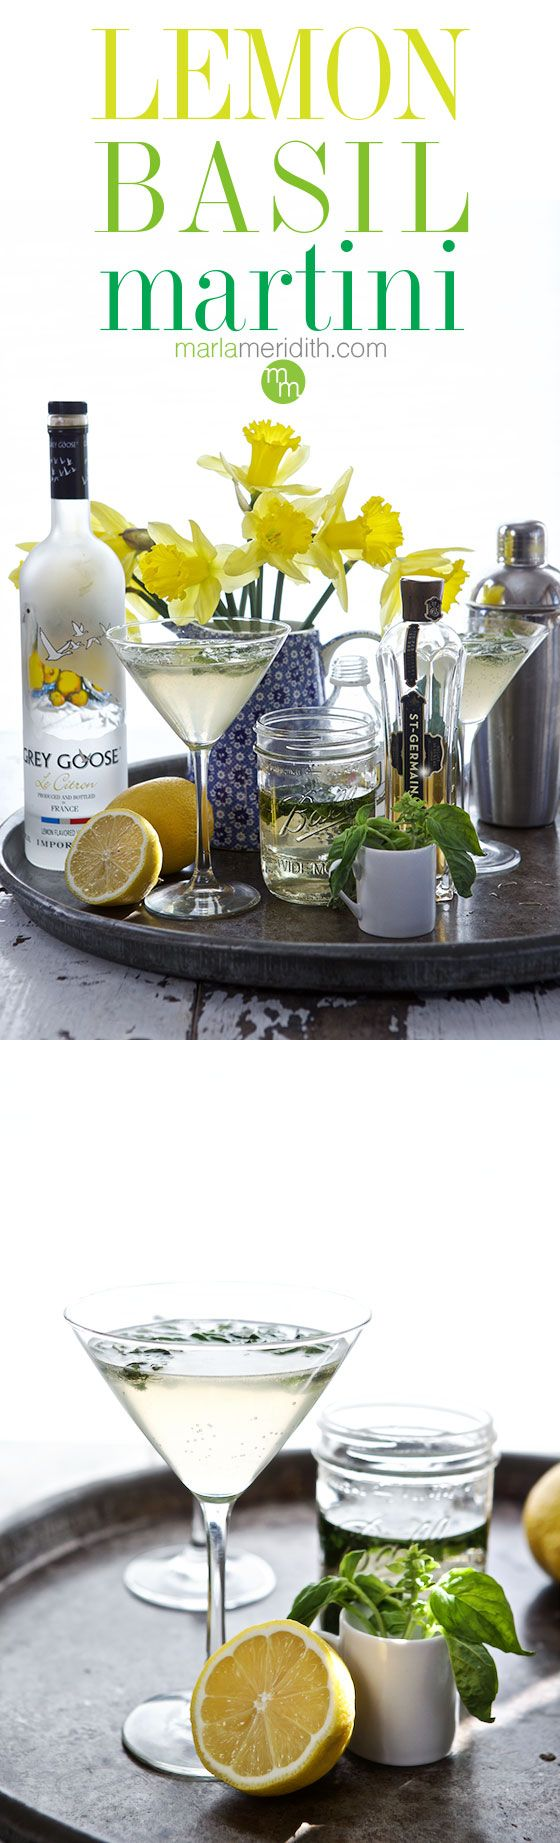 Lemon Basil Martini | A beautiful & refreshing #cocktail | MarlaMeridith.com ( @marlameridith ) barefootstyling.com